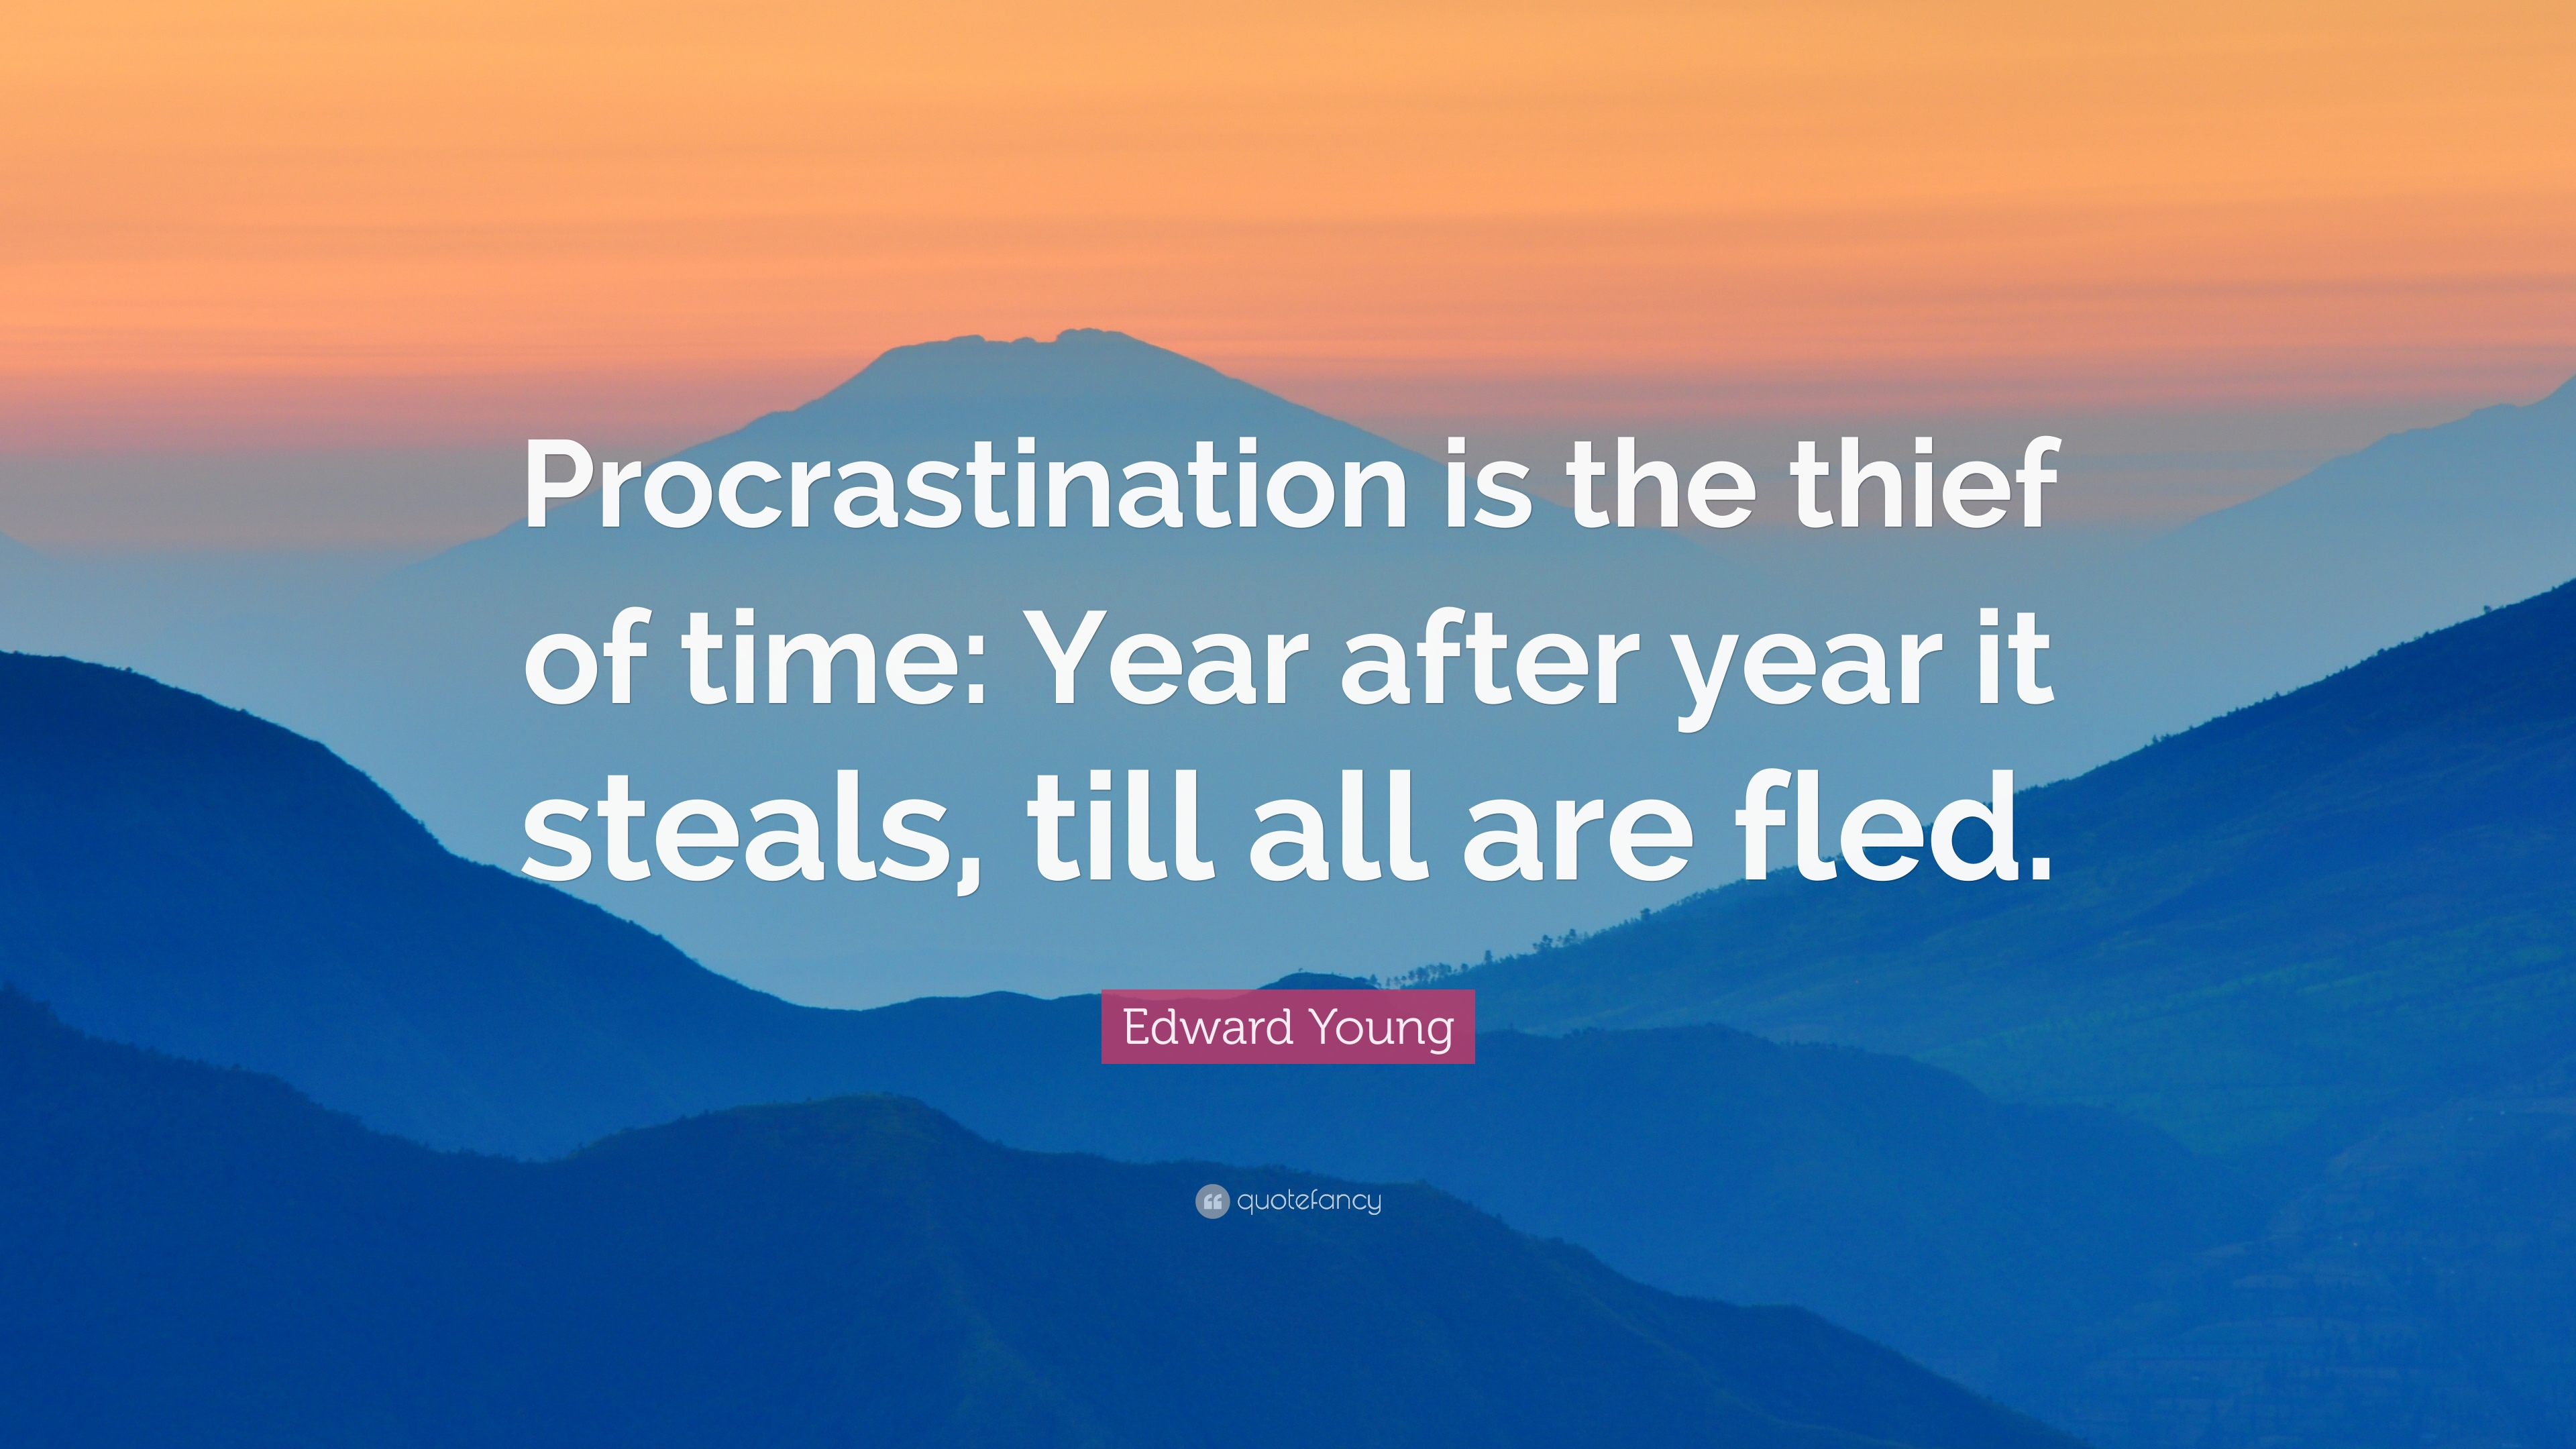 a thief of time is procrastination This is one of the areas that affect many of us time after time procrastinate is  worse than a thief it is like an arm rubber, rubbing you of.